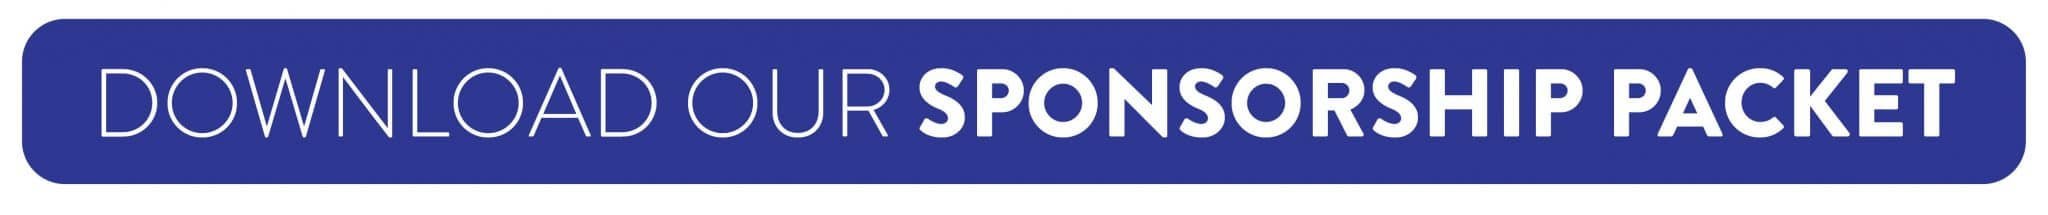 download our sponsorship packet